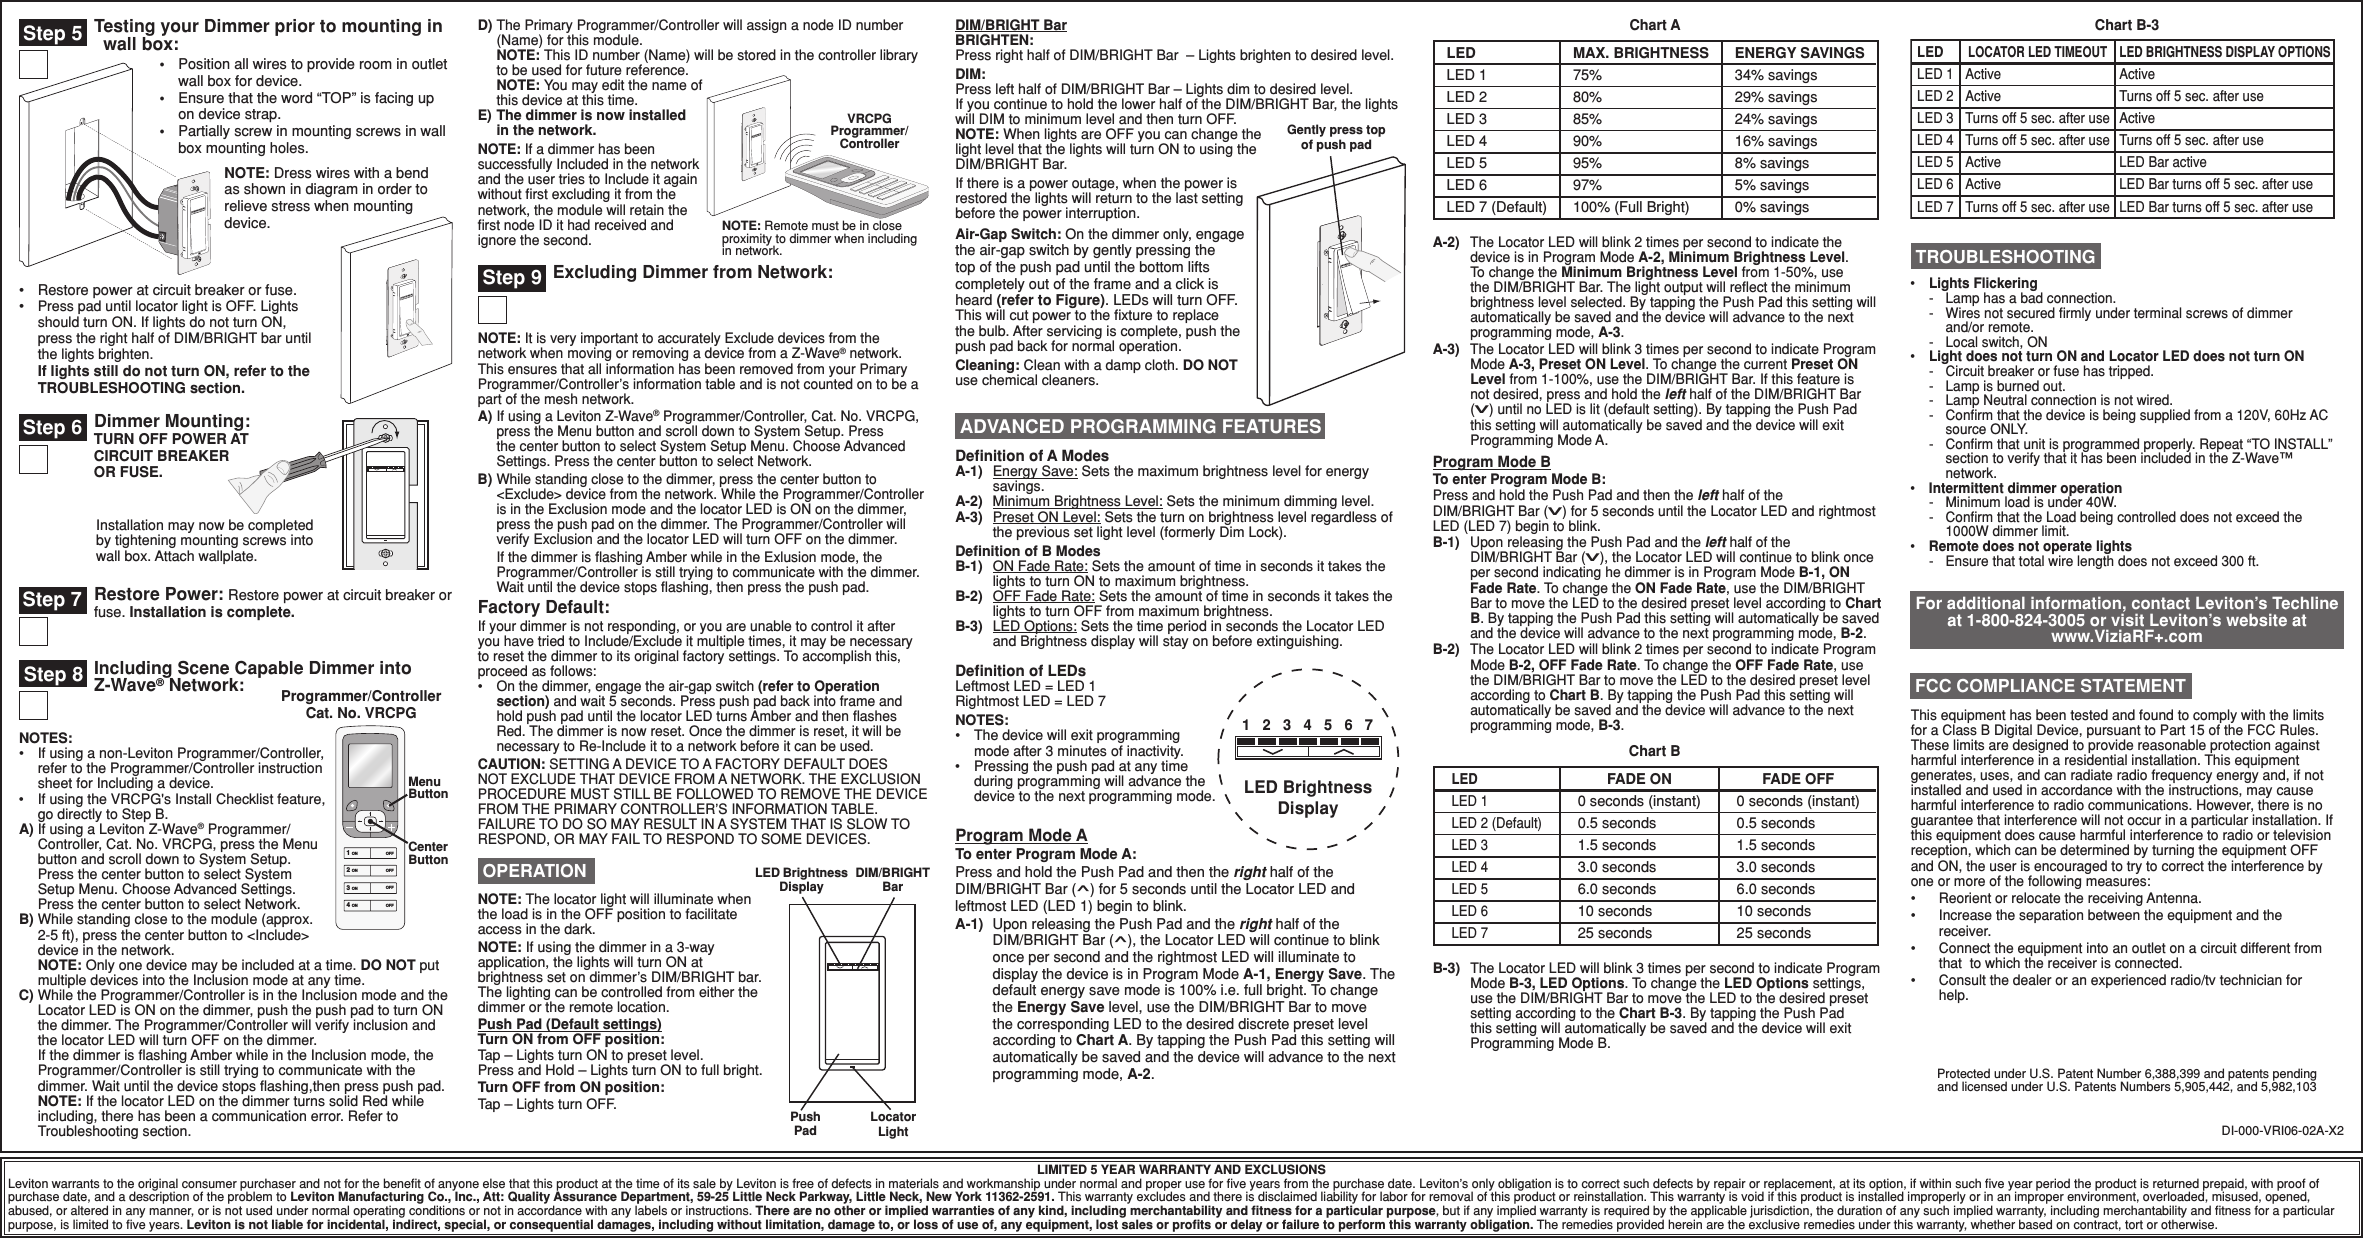 Leviton VRSDC Dimmers User Manual 3 of 7